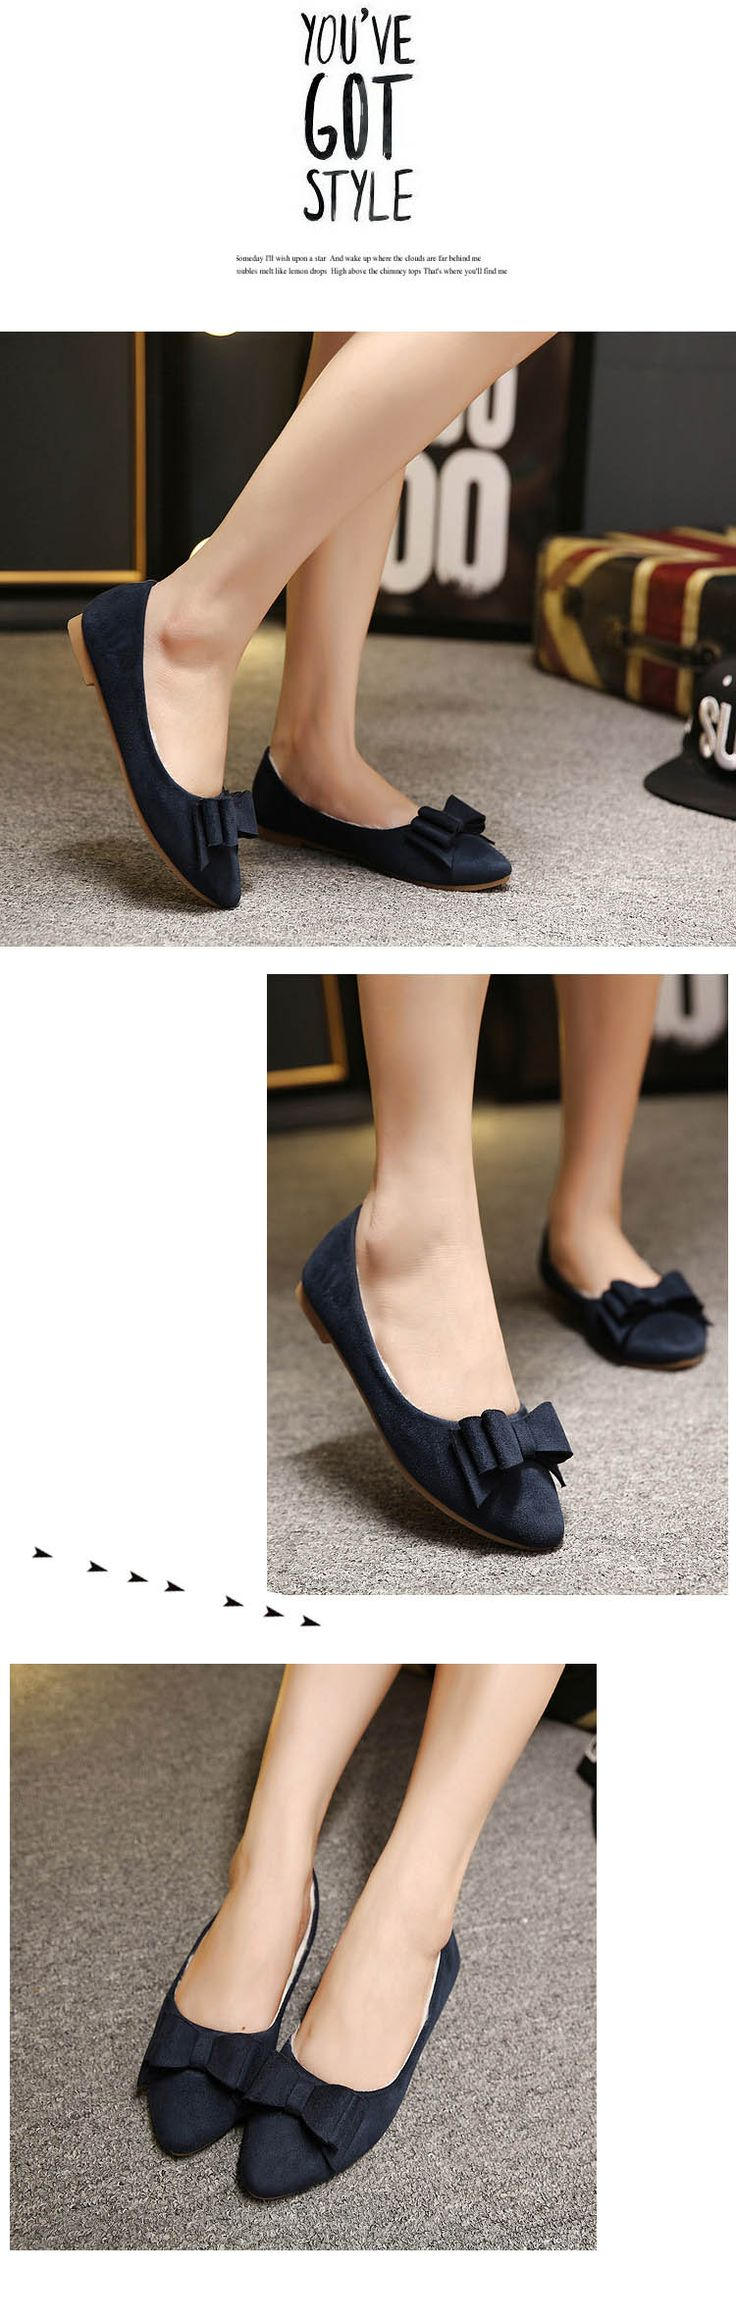 $13.50 -Fashion Pointed Toe Flat Shoes | Upper Material: Leather Outsole Material: Rubber Heel Height: 1 cm Color: Red, black, deep blue Style: Pointed toe bowknot flat